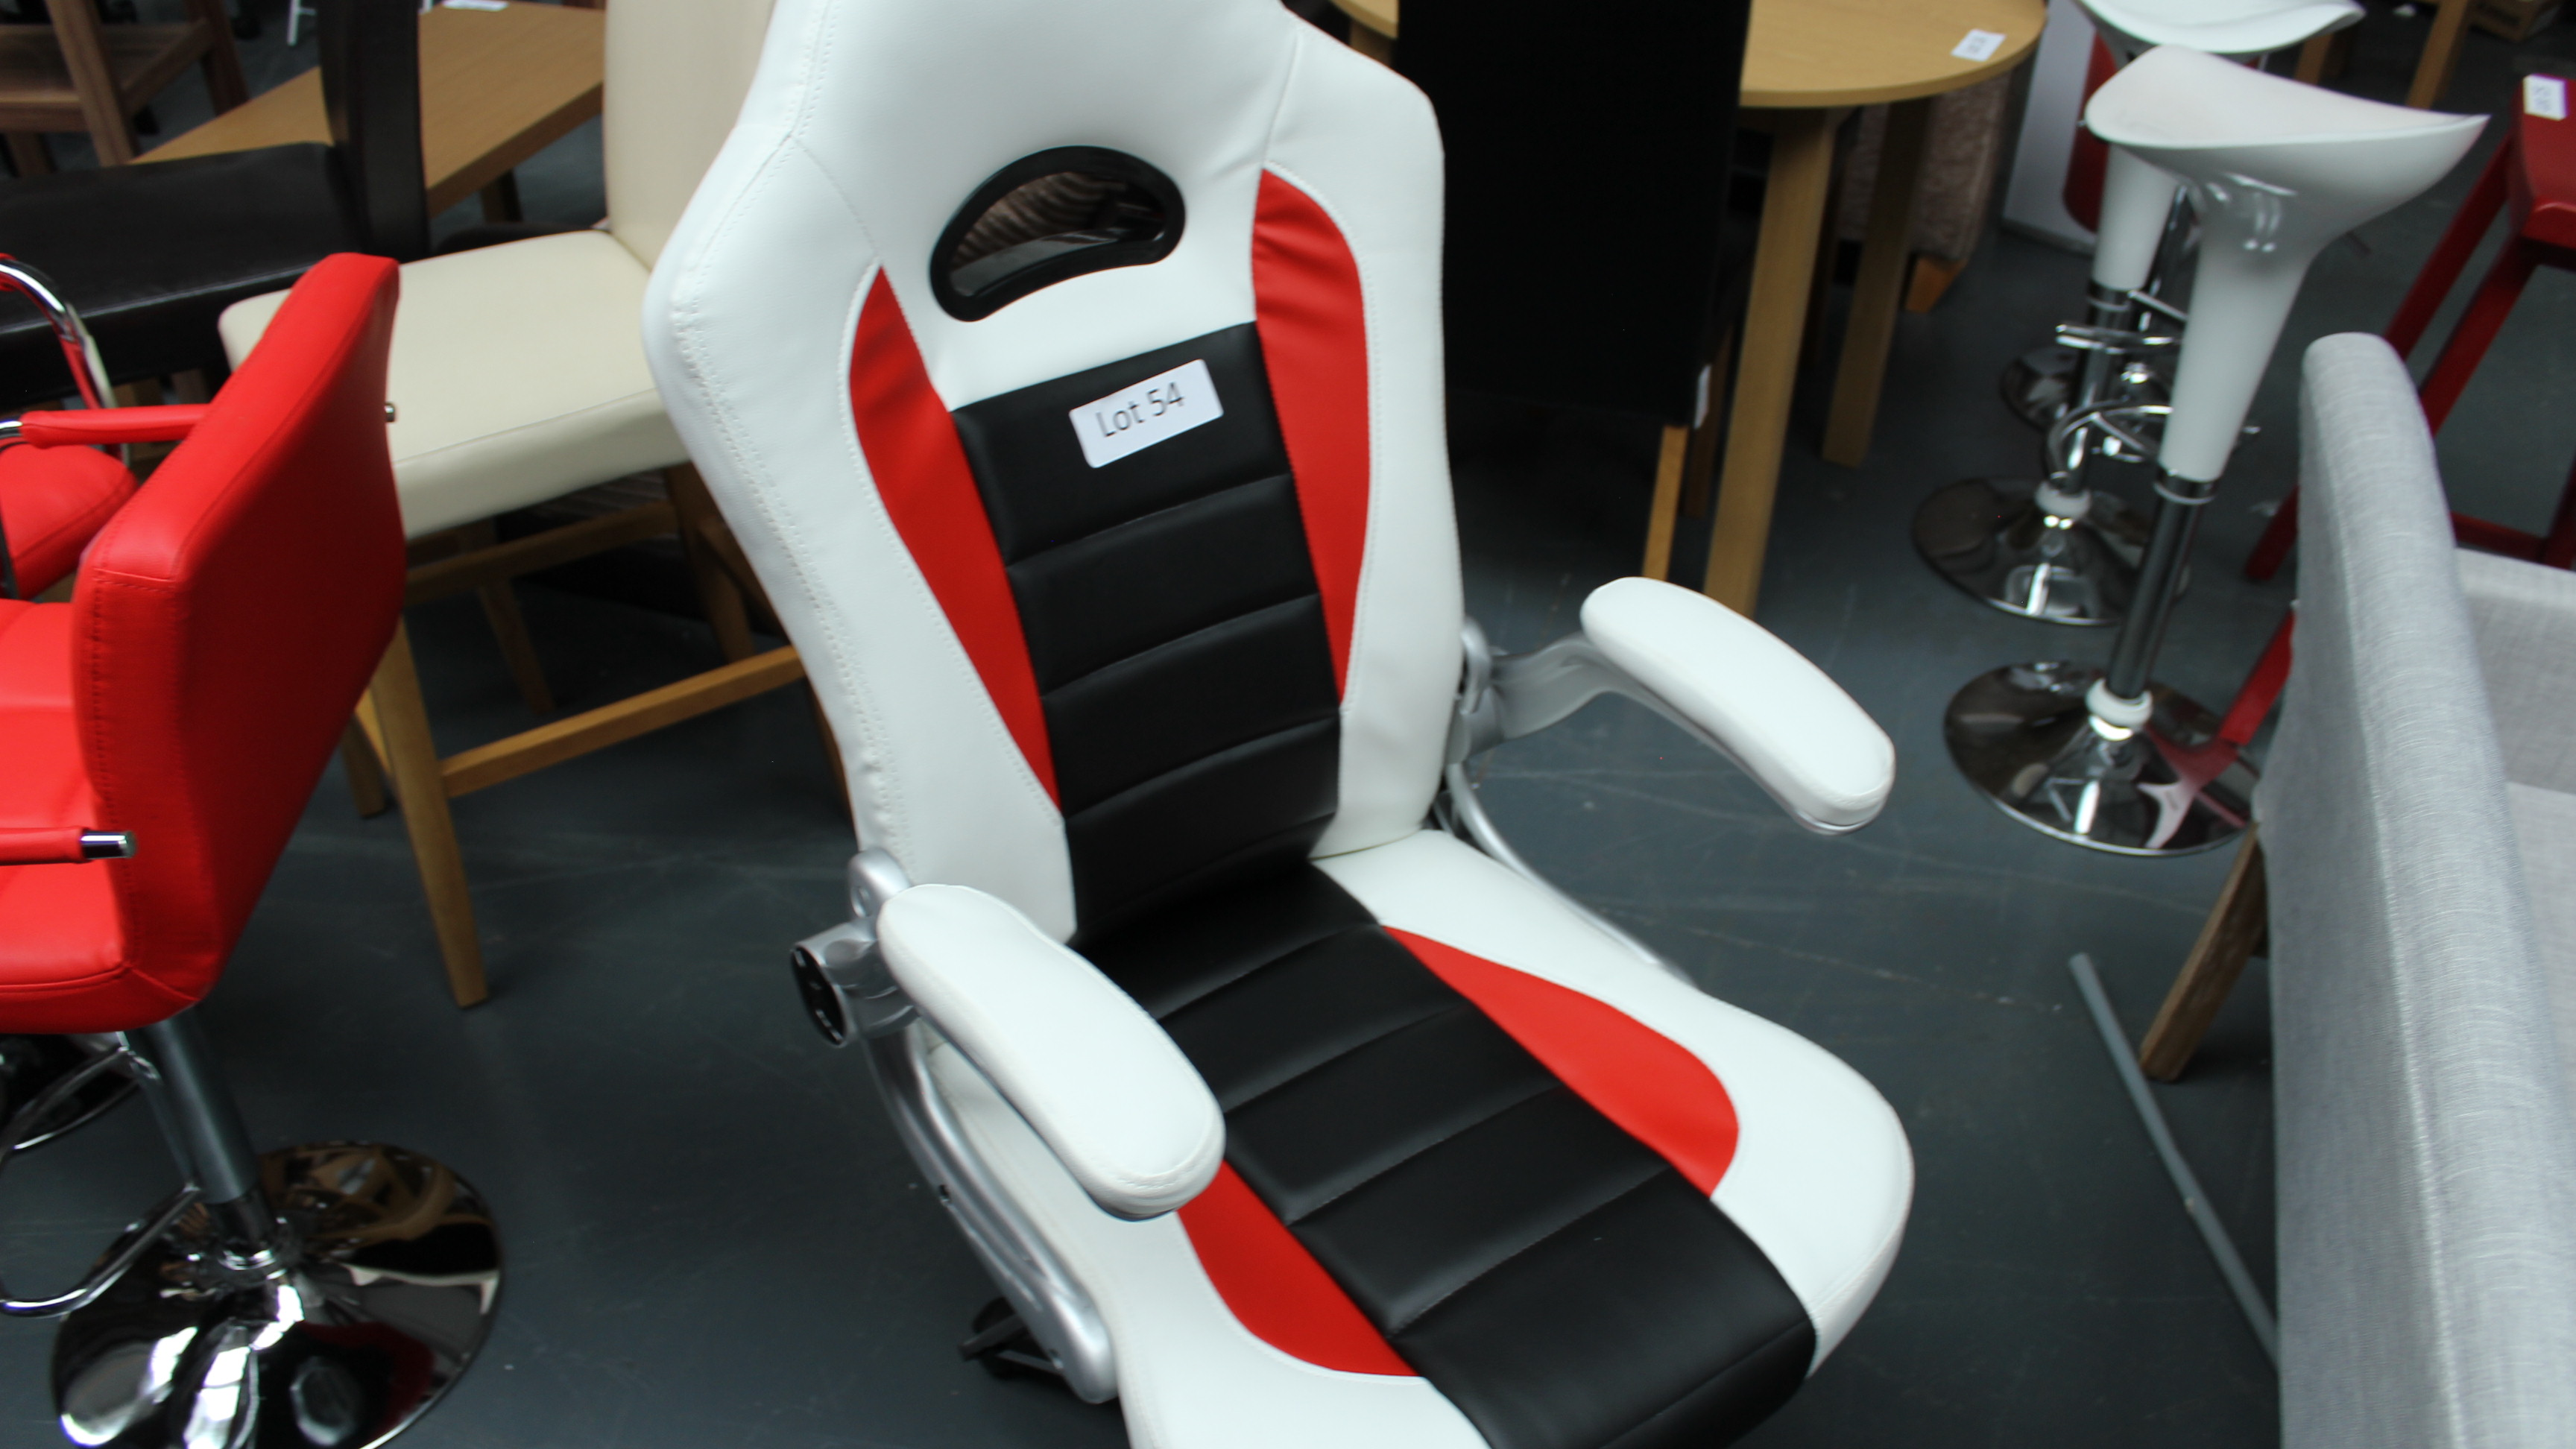 Lot 54 - Red, Black & White Computer Chair. New